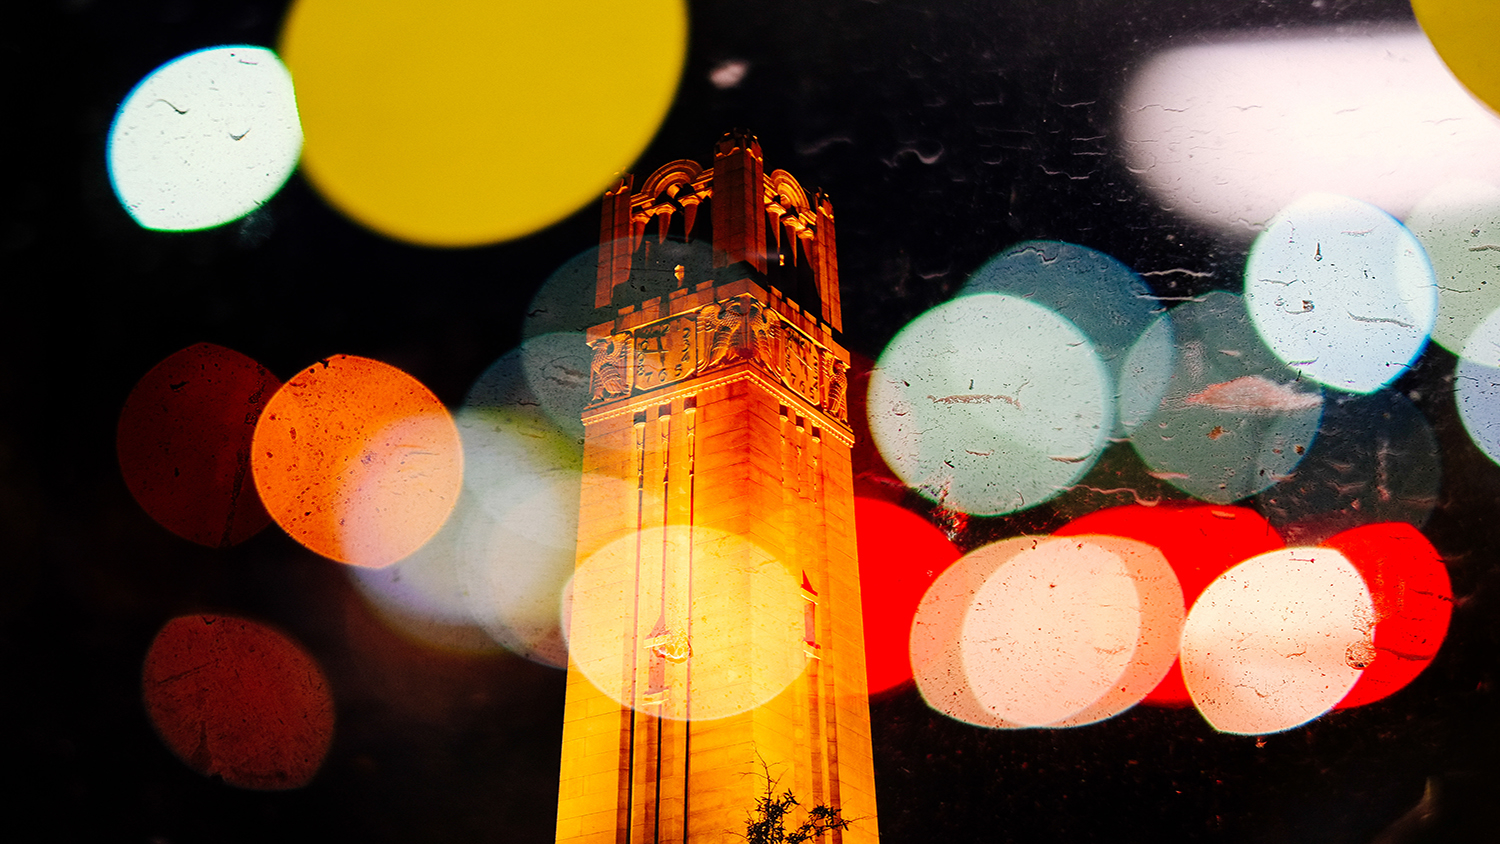 Belltower with circles of light